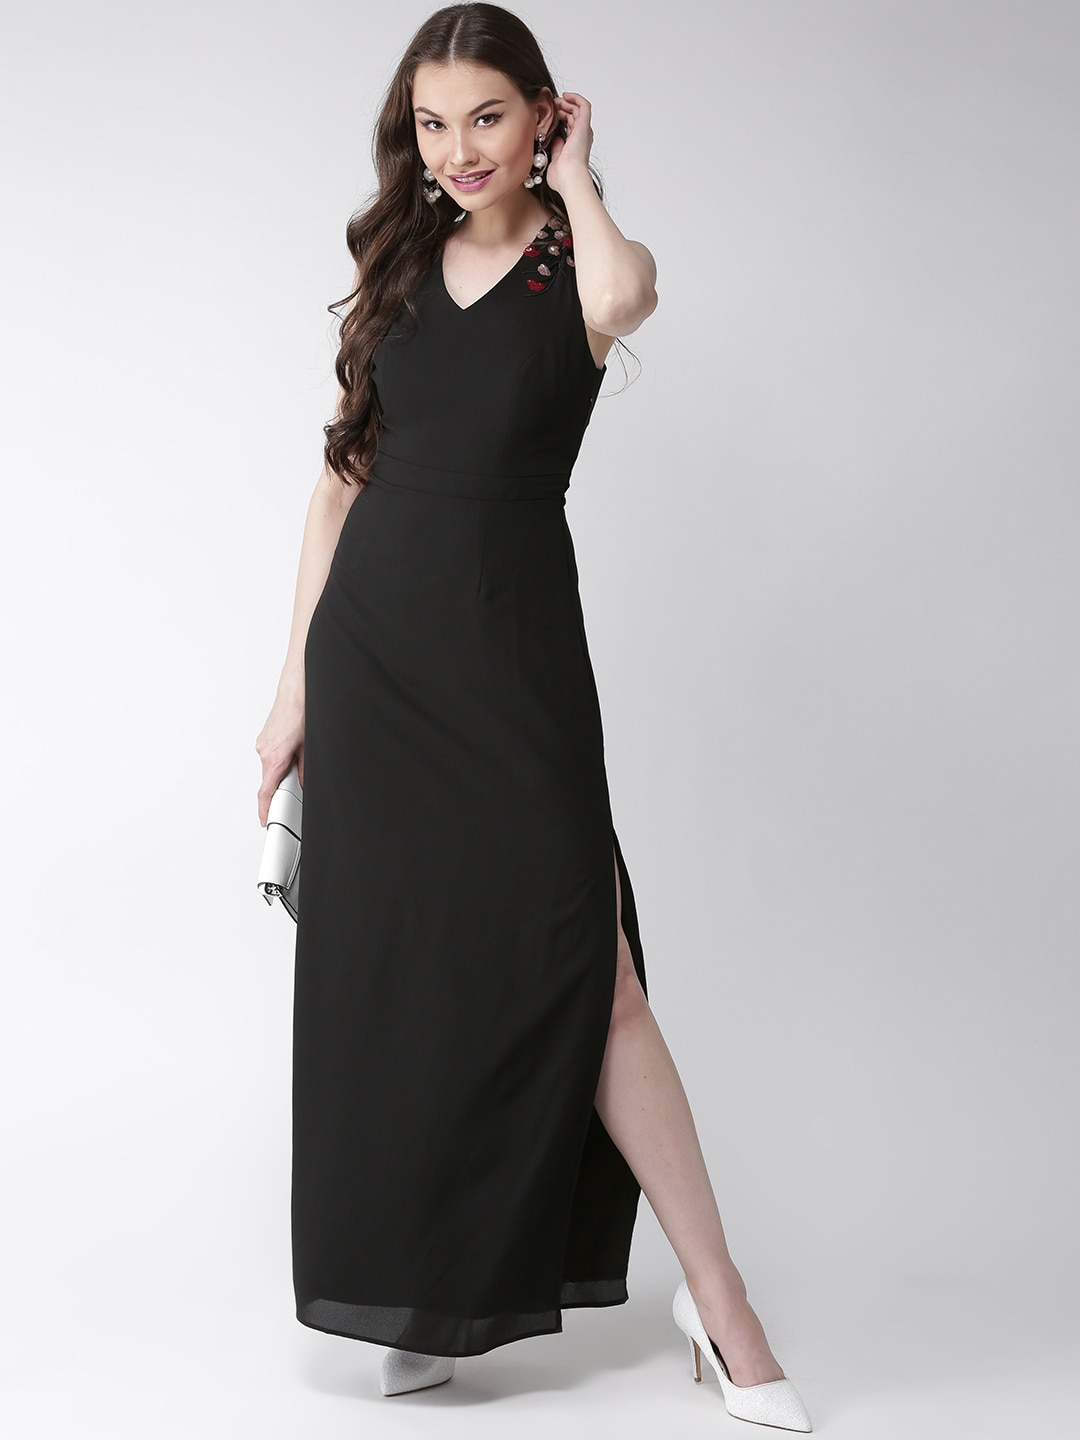 e56617be81 Gowns online shopping India | Women's Gown | Sweet Couch